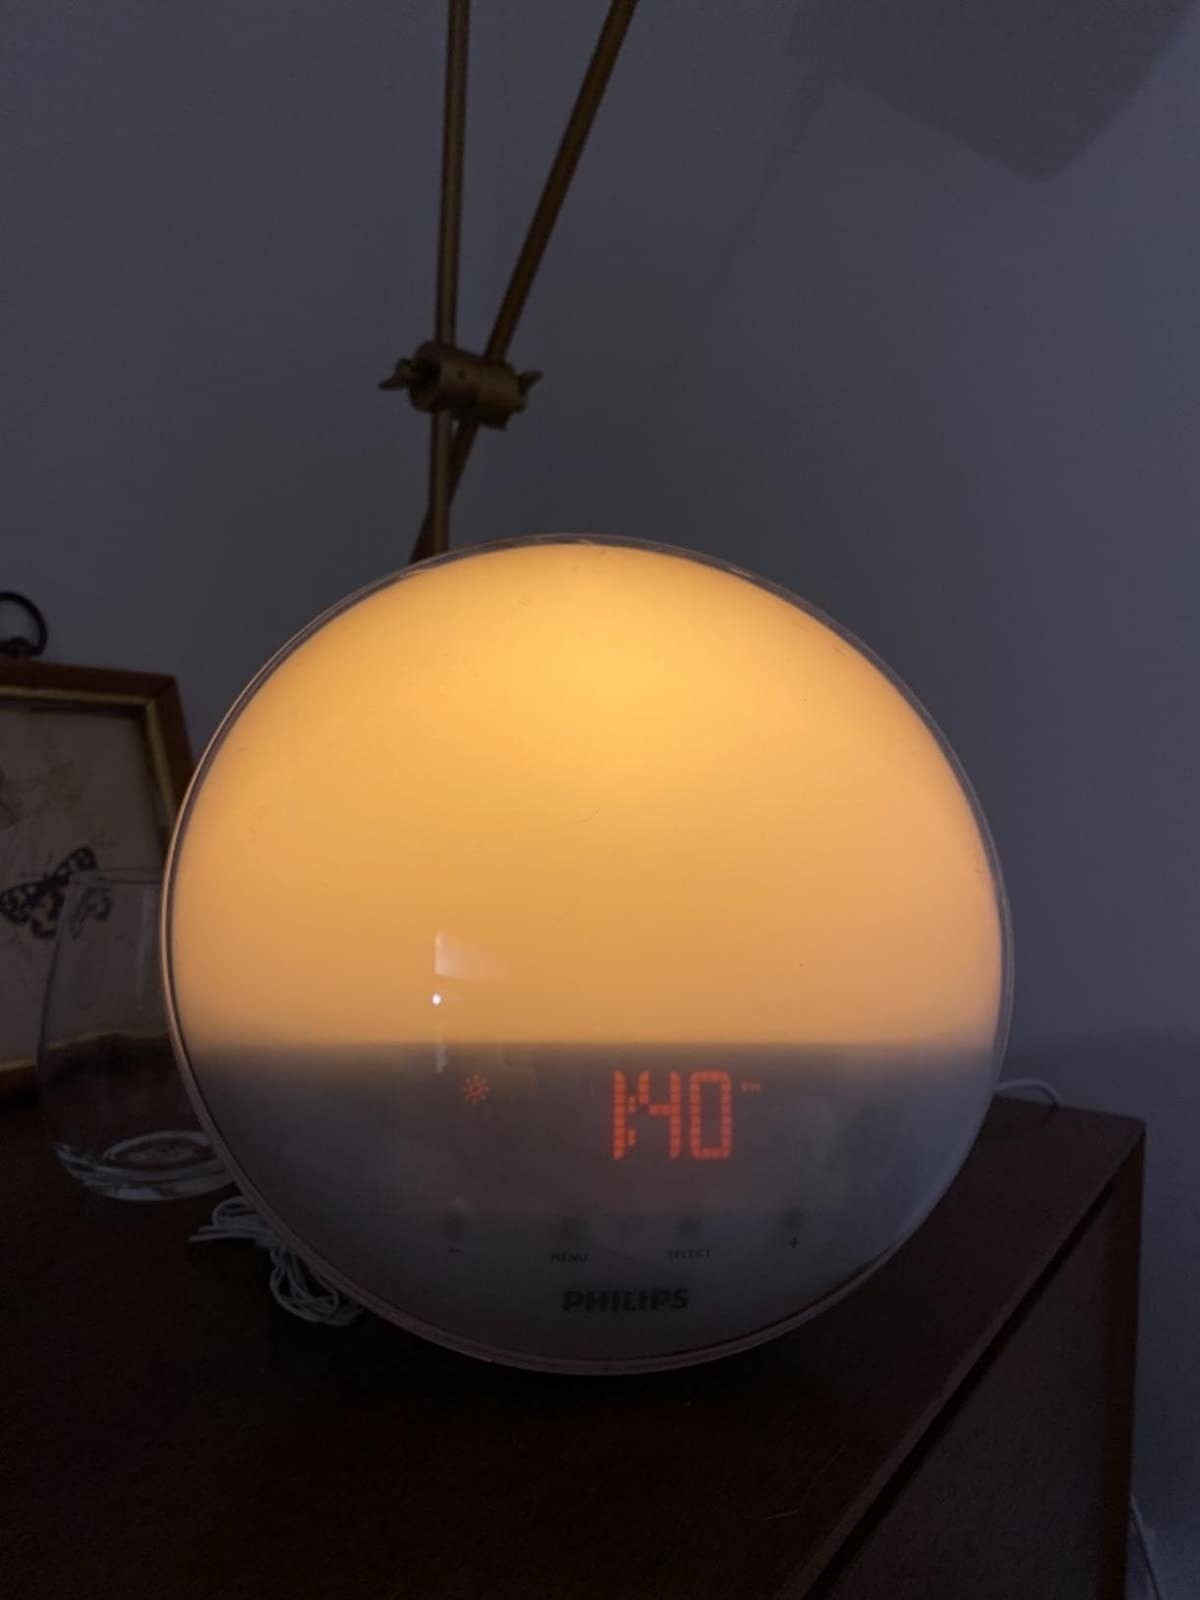 reviewer image of the phillips wake up light on a nightstand